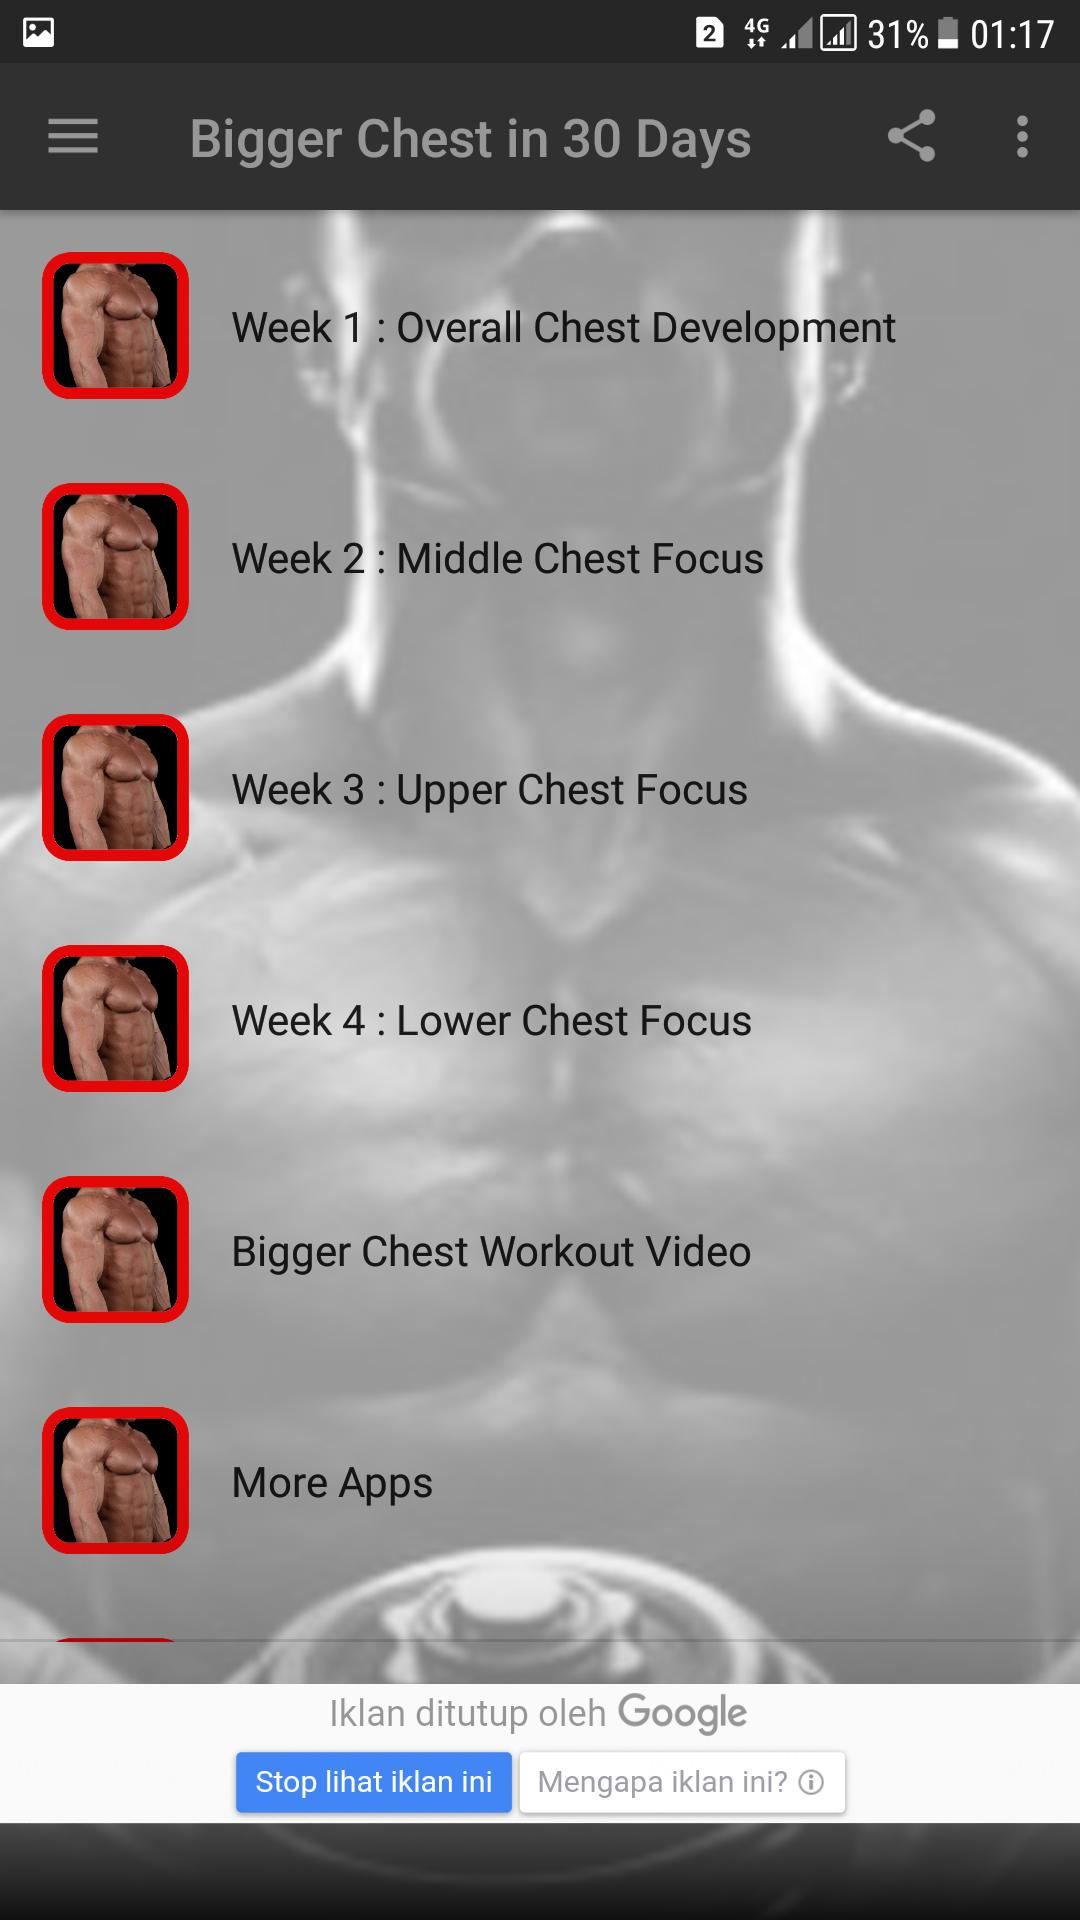 Bigger Chest in 30 Days for Android - APK Download